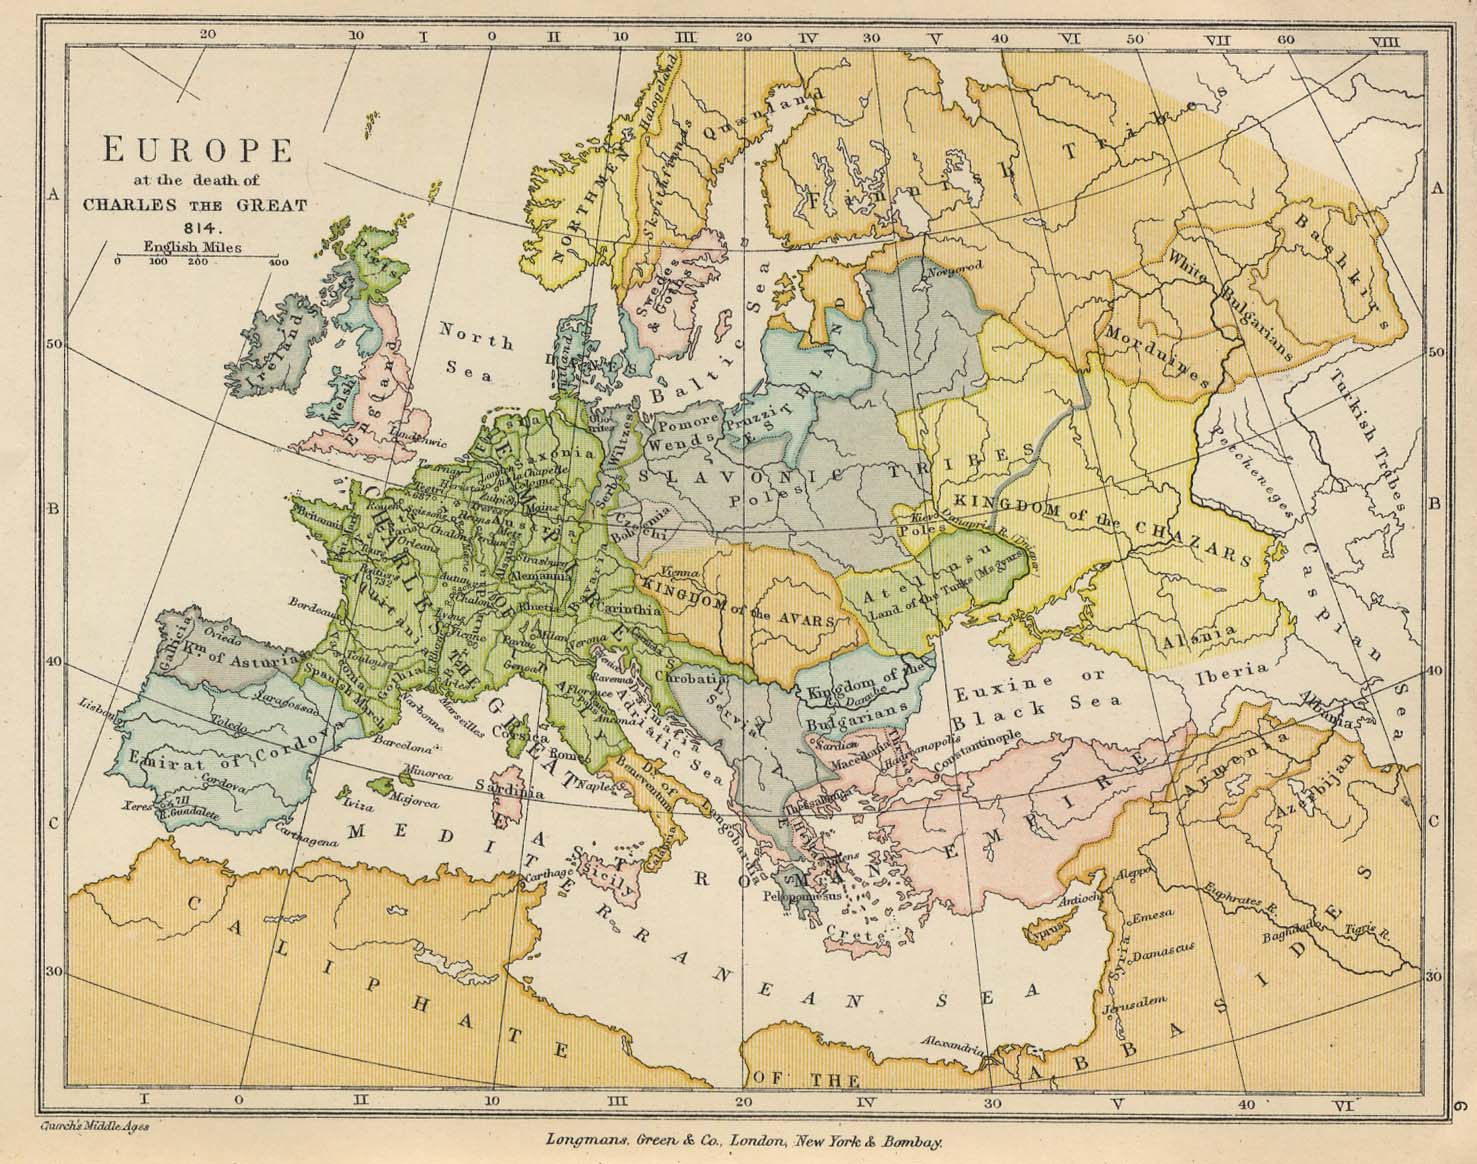 europe at the death of charles the great 814